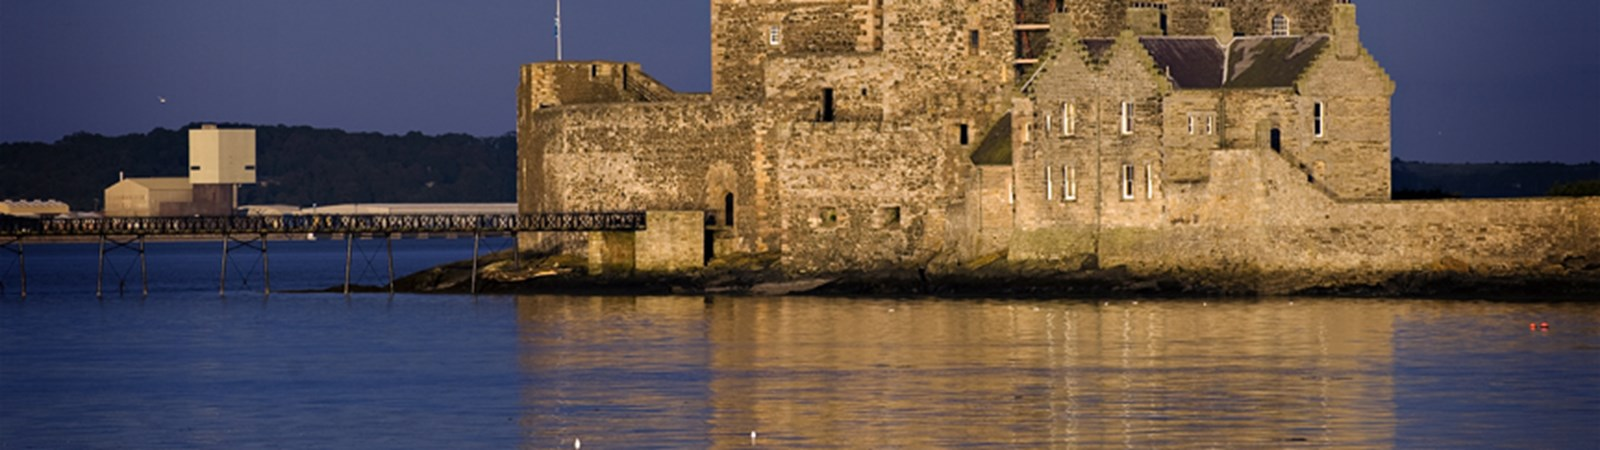 Blackness Castle, Blackness, Scotland